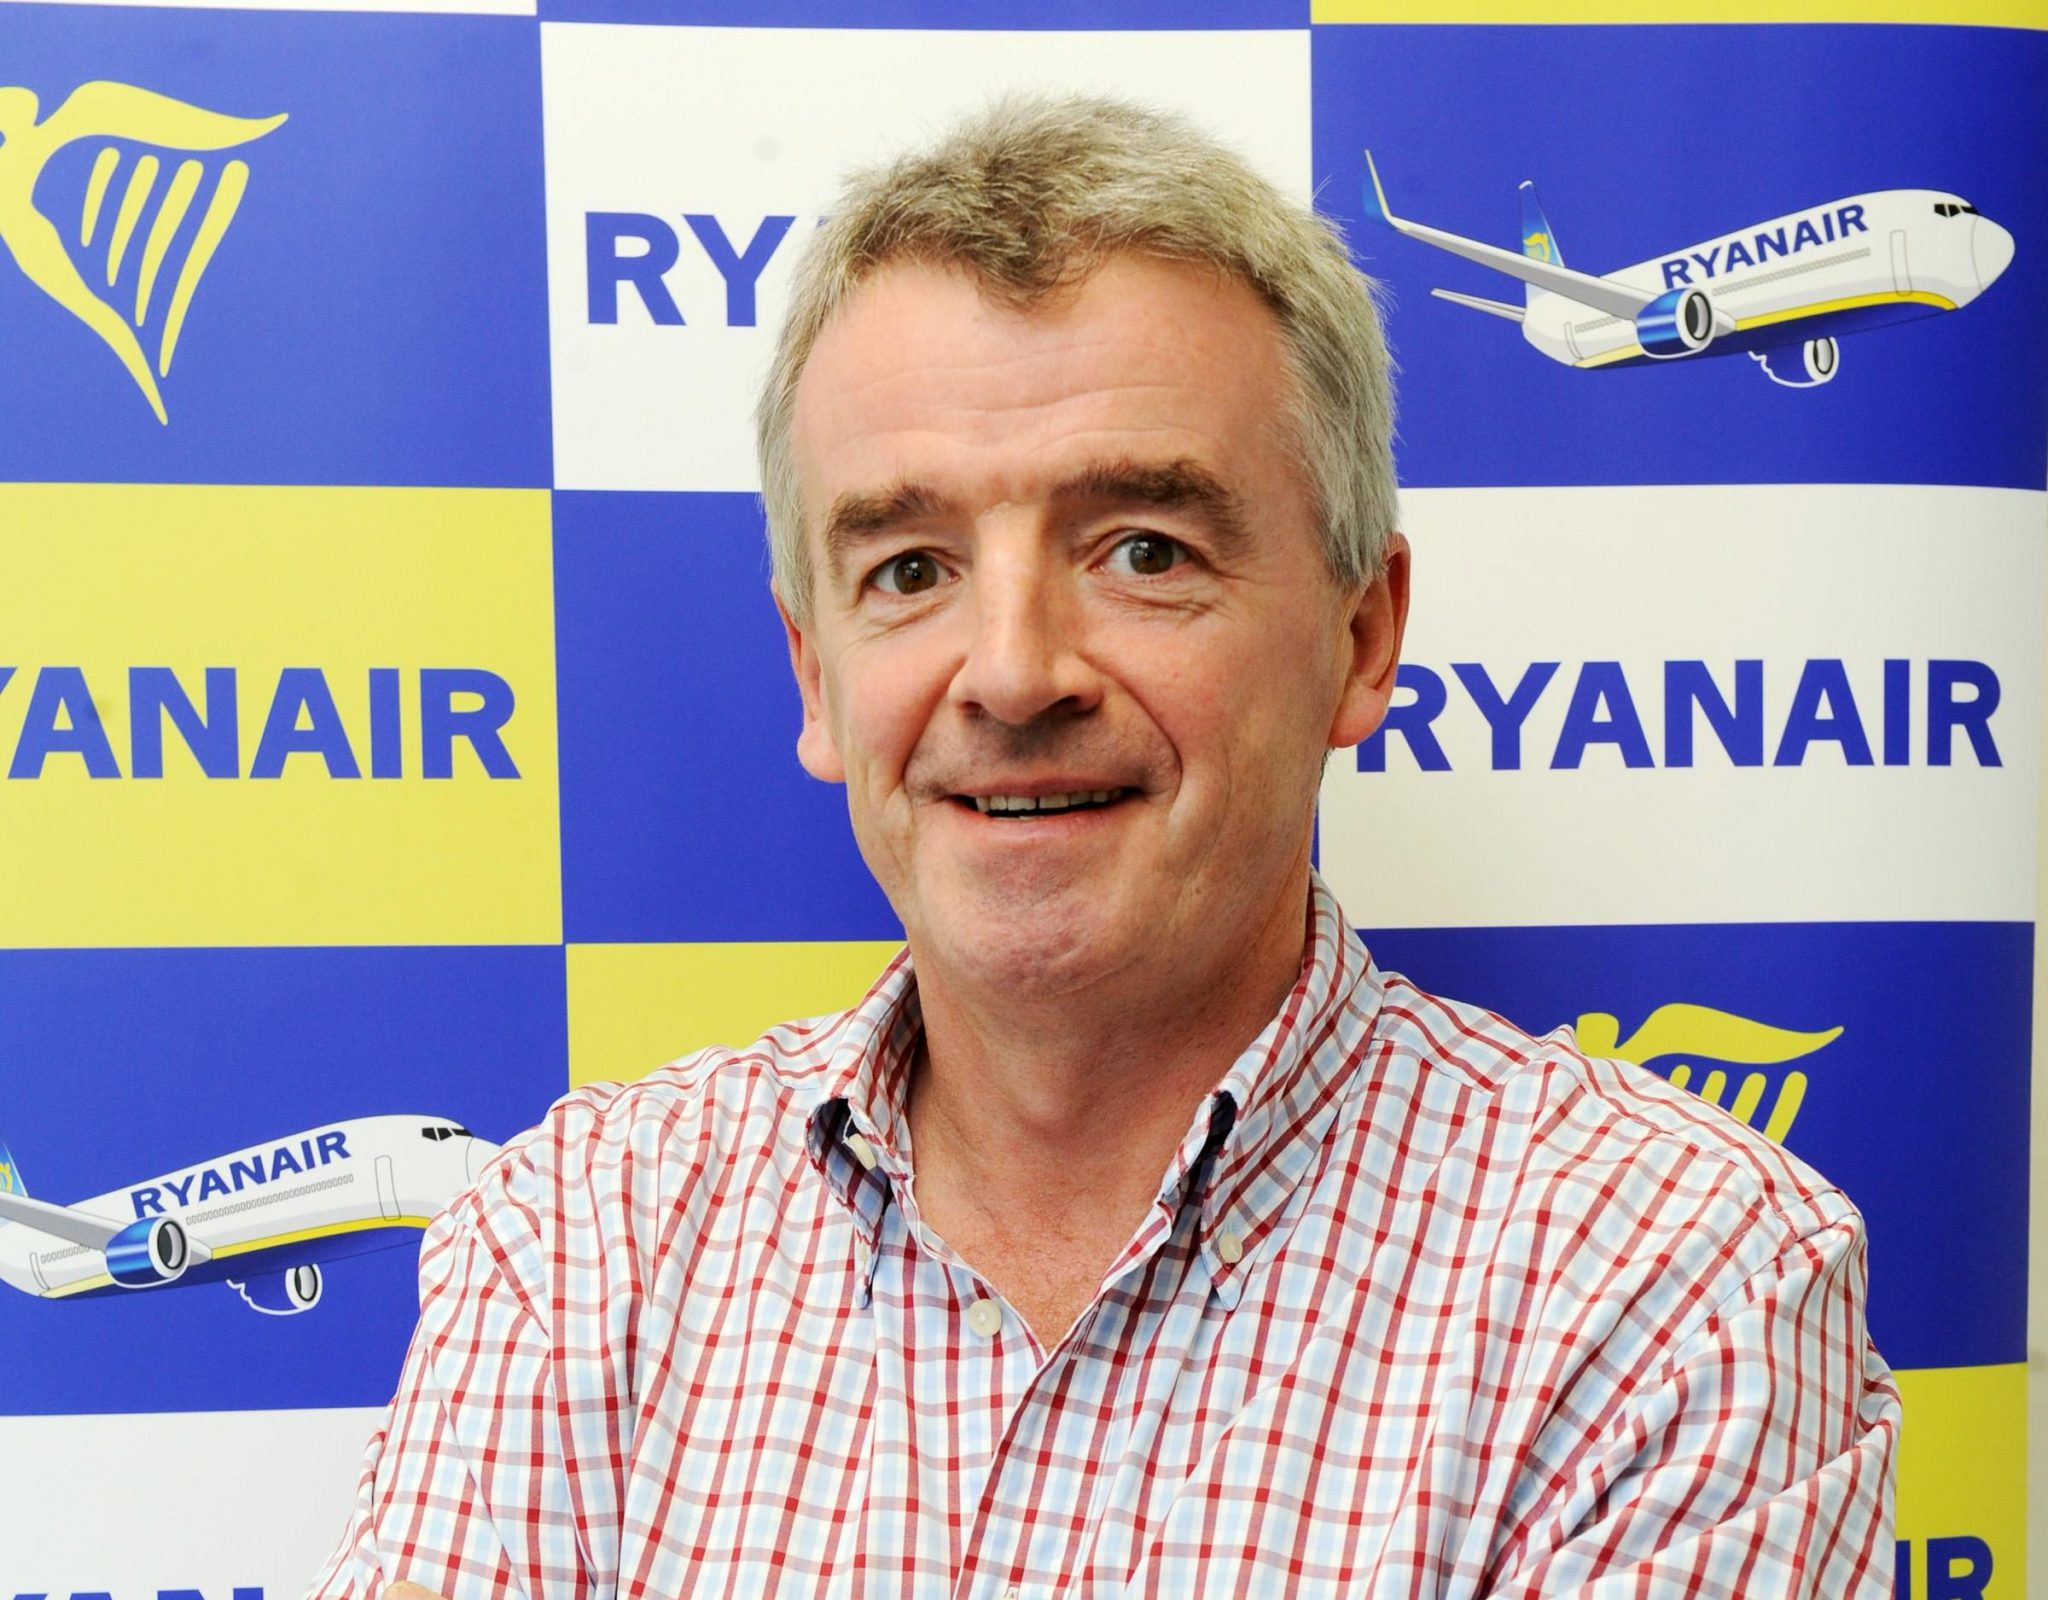 Ryanair 'reasonably confident' of 737 Max return by early 2020